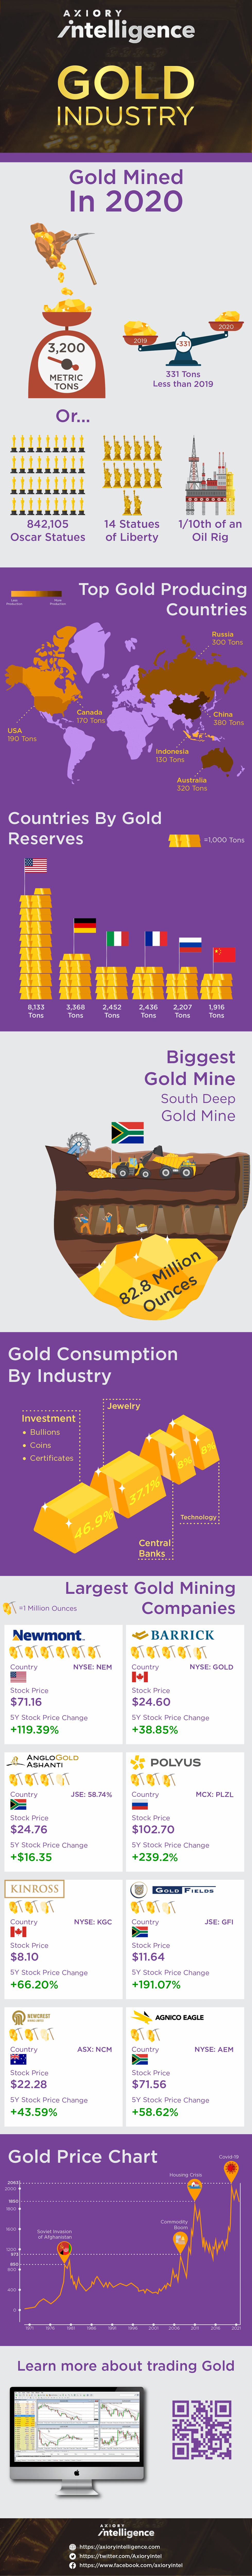 Gold Industry Explained